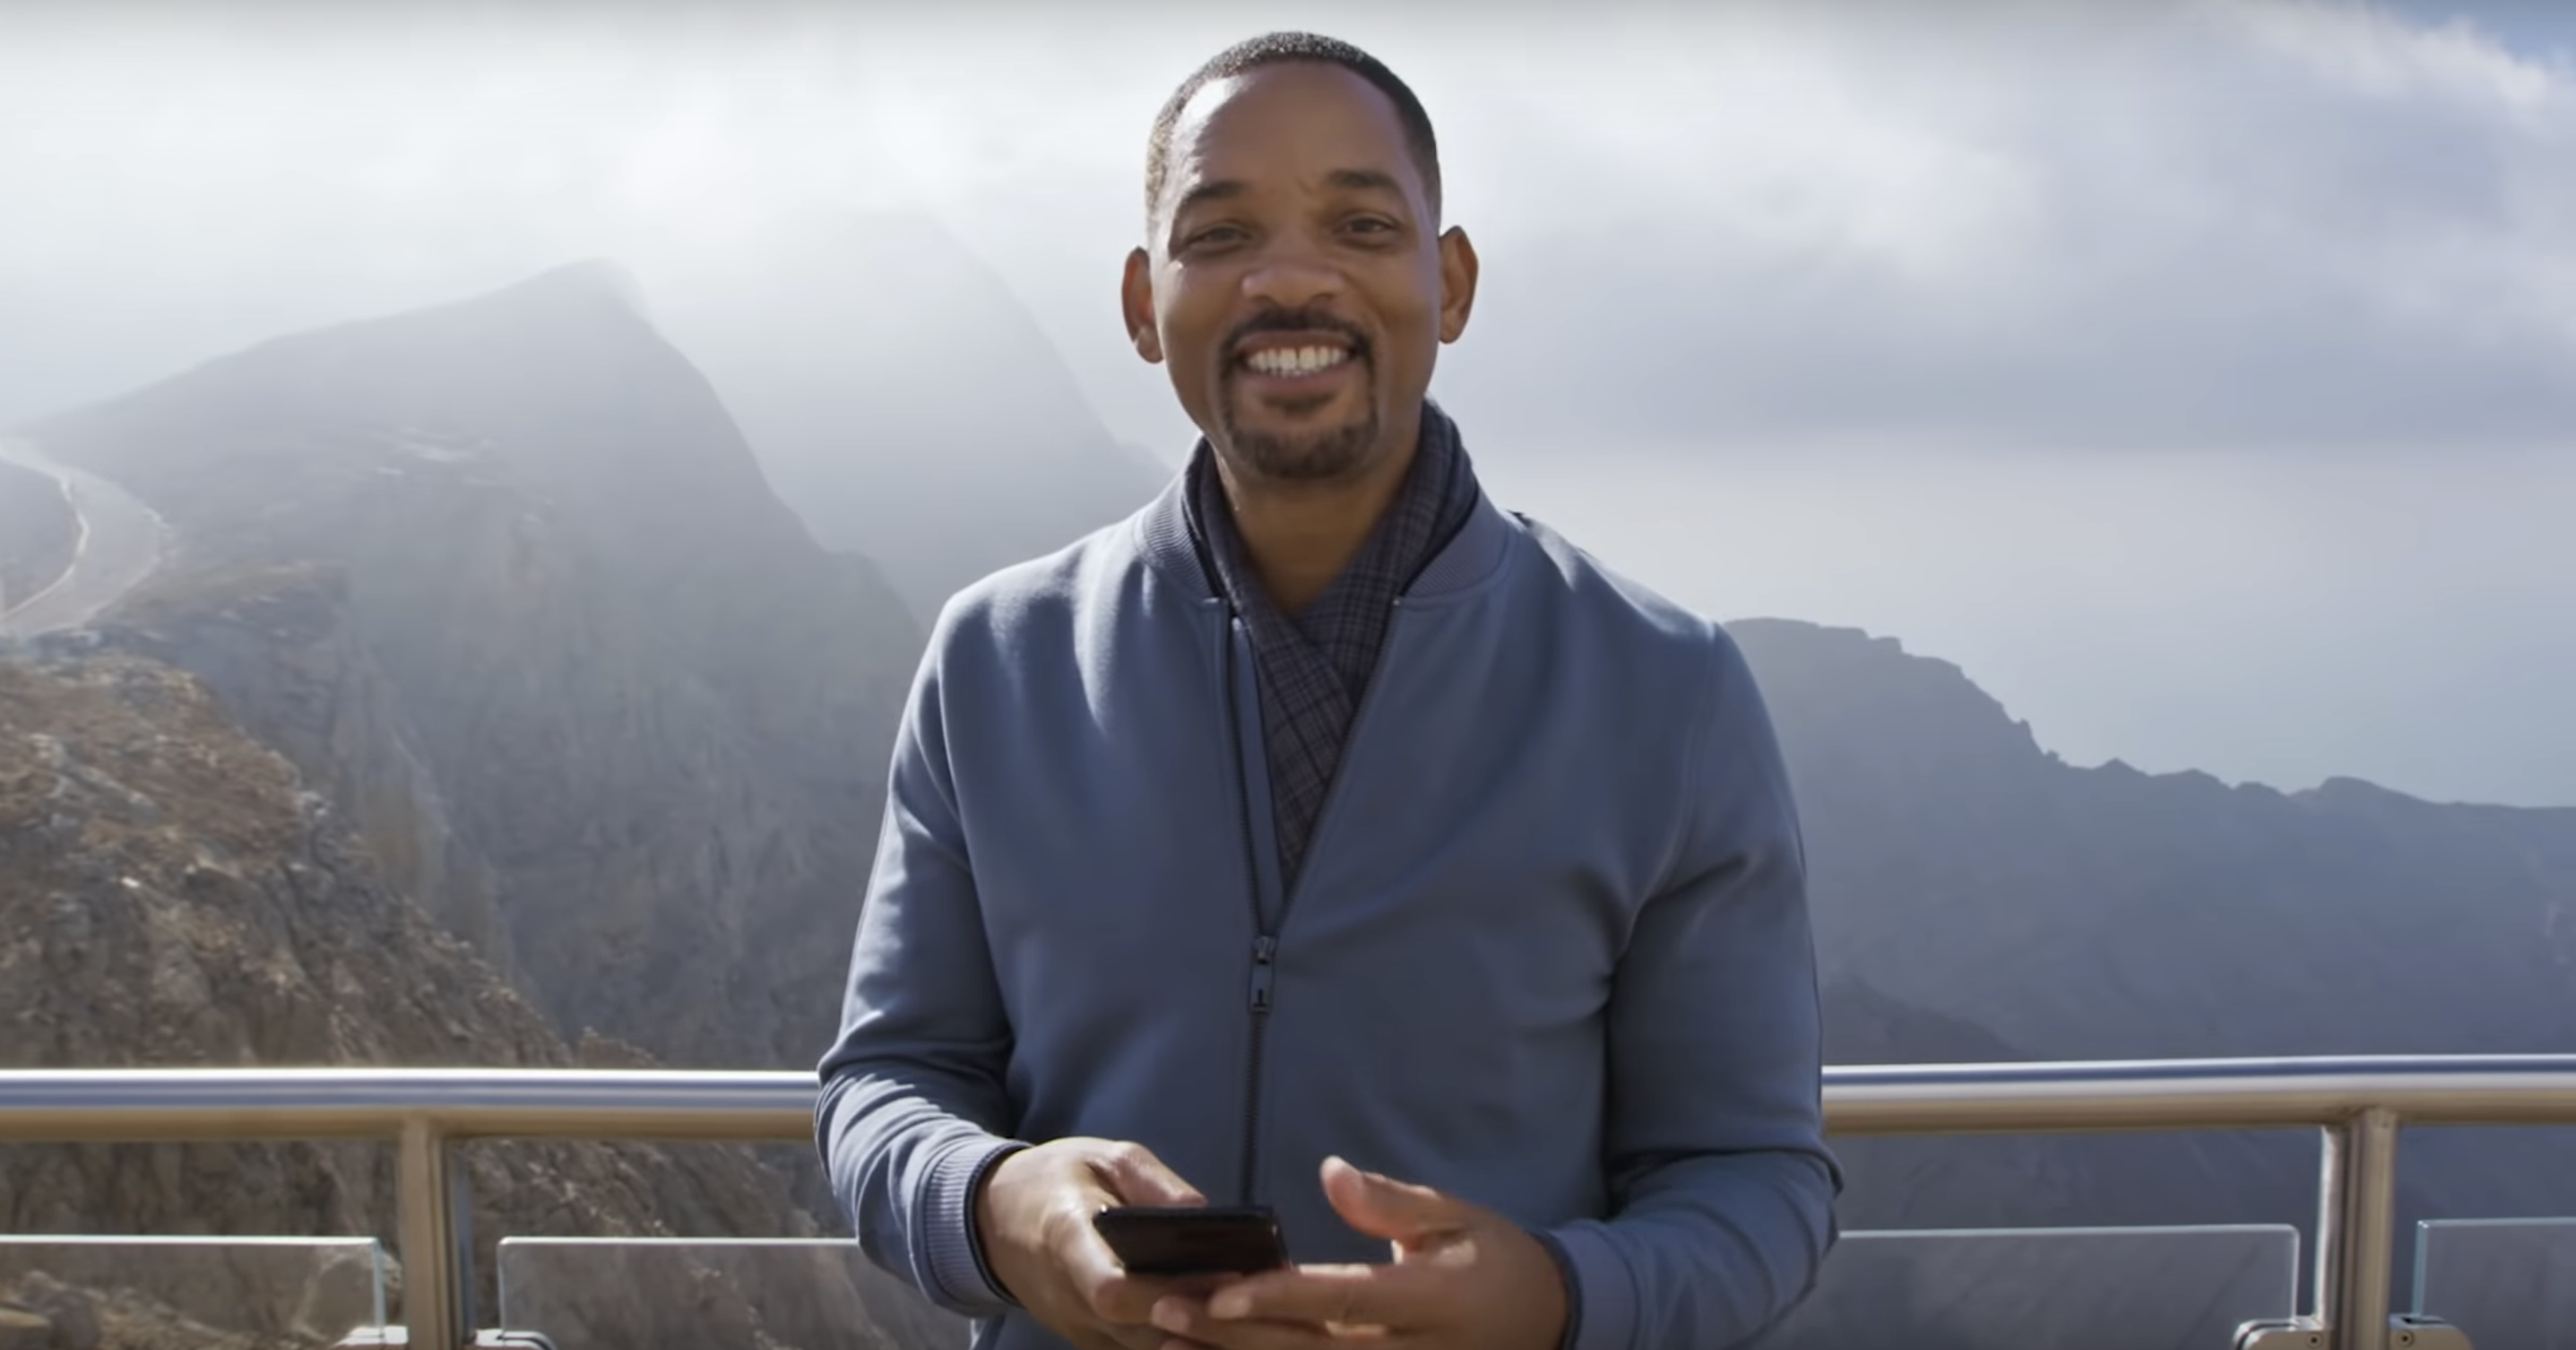 YouTube Rewind hides its community's biggest moments to